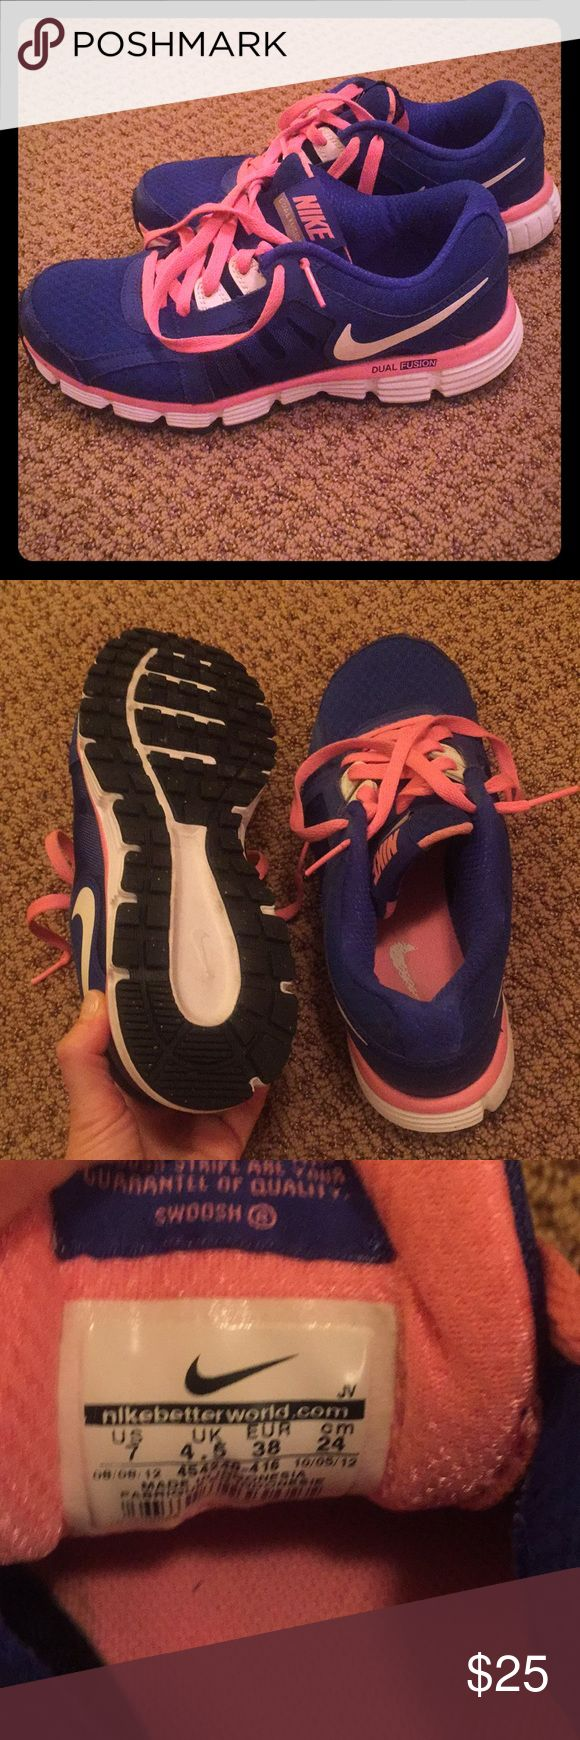 Nike Dual Fusion Running Shoe Size 7 Great looking and comfortable Running shoes, bright blue and pink. Nike Shoes Athletic Shoes